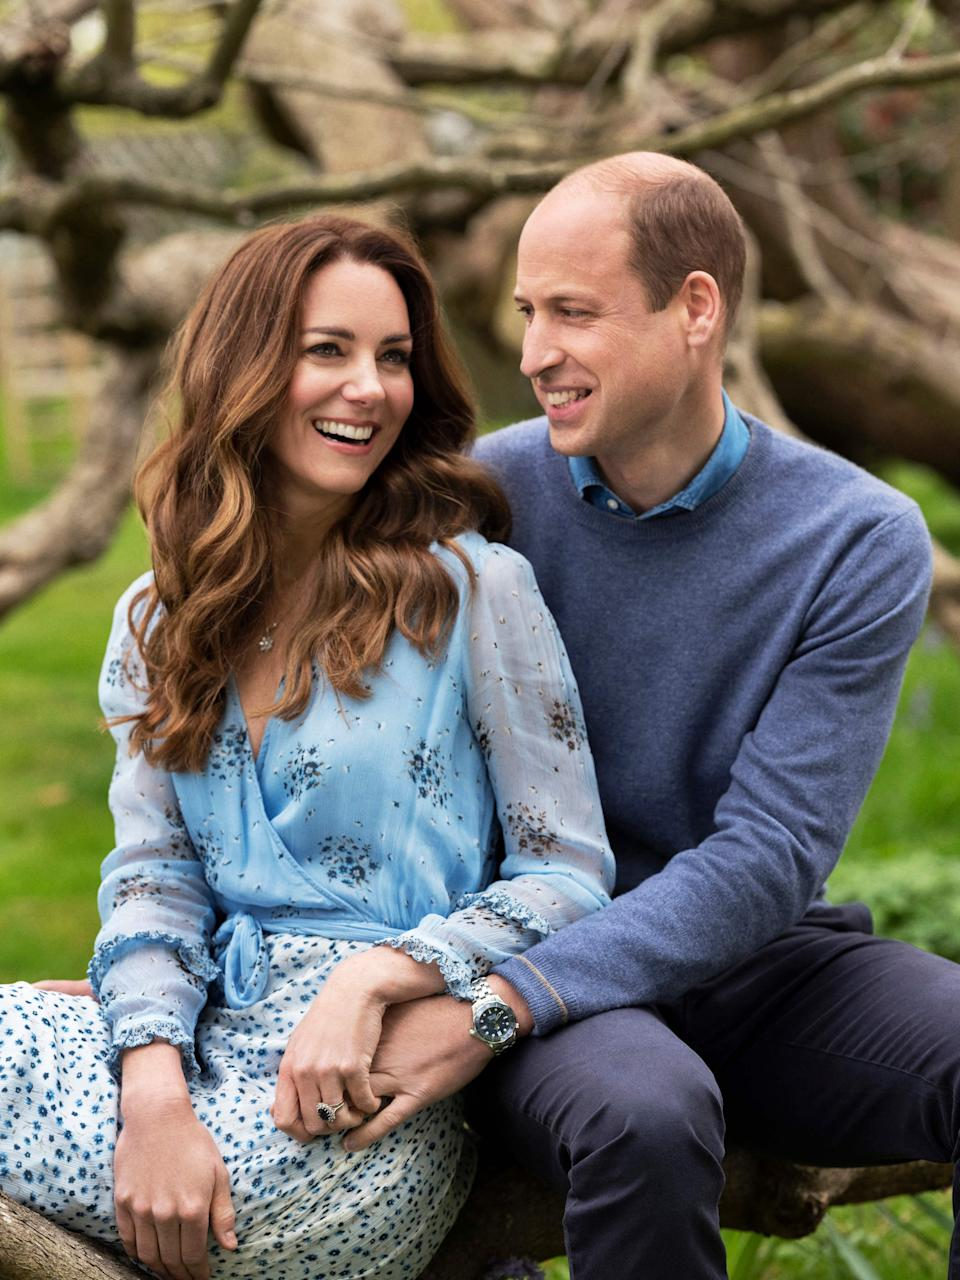 Prince William and Duchess Kate of Cambridge pose for a portrait released on April 28, 2021, to mark their 10th wedding anniversary on April 29.